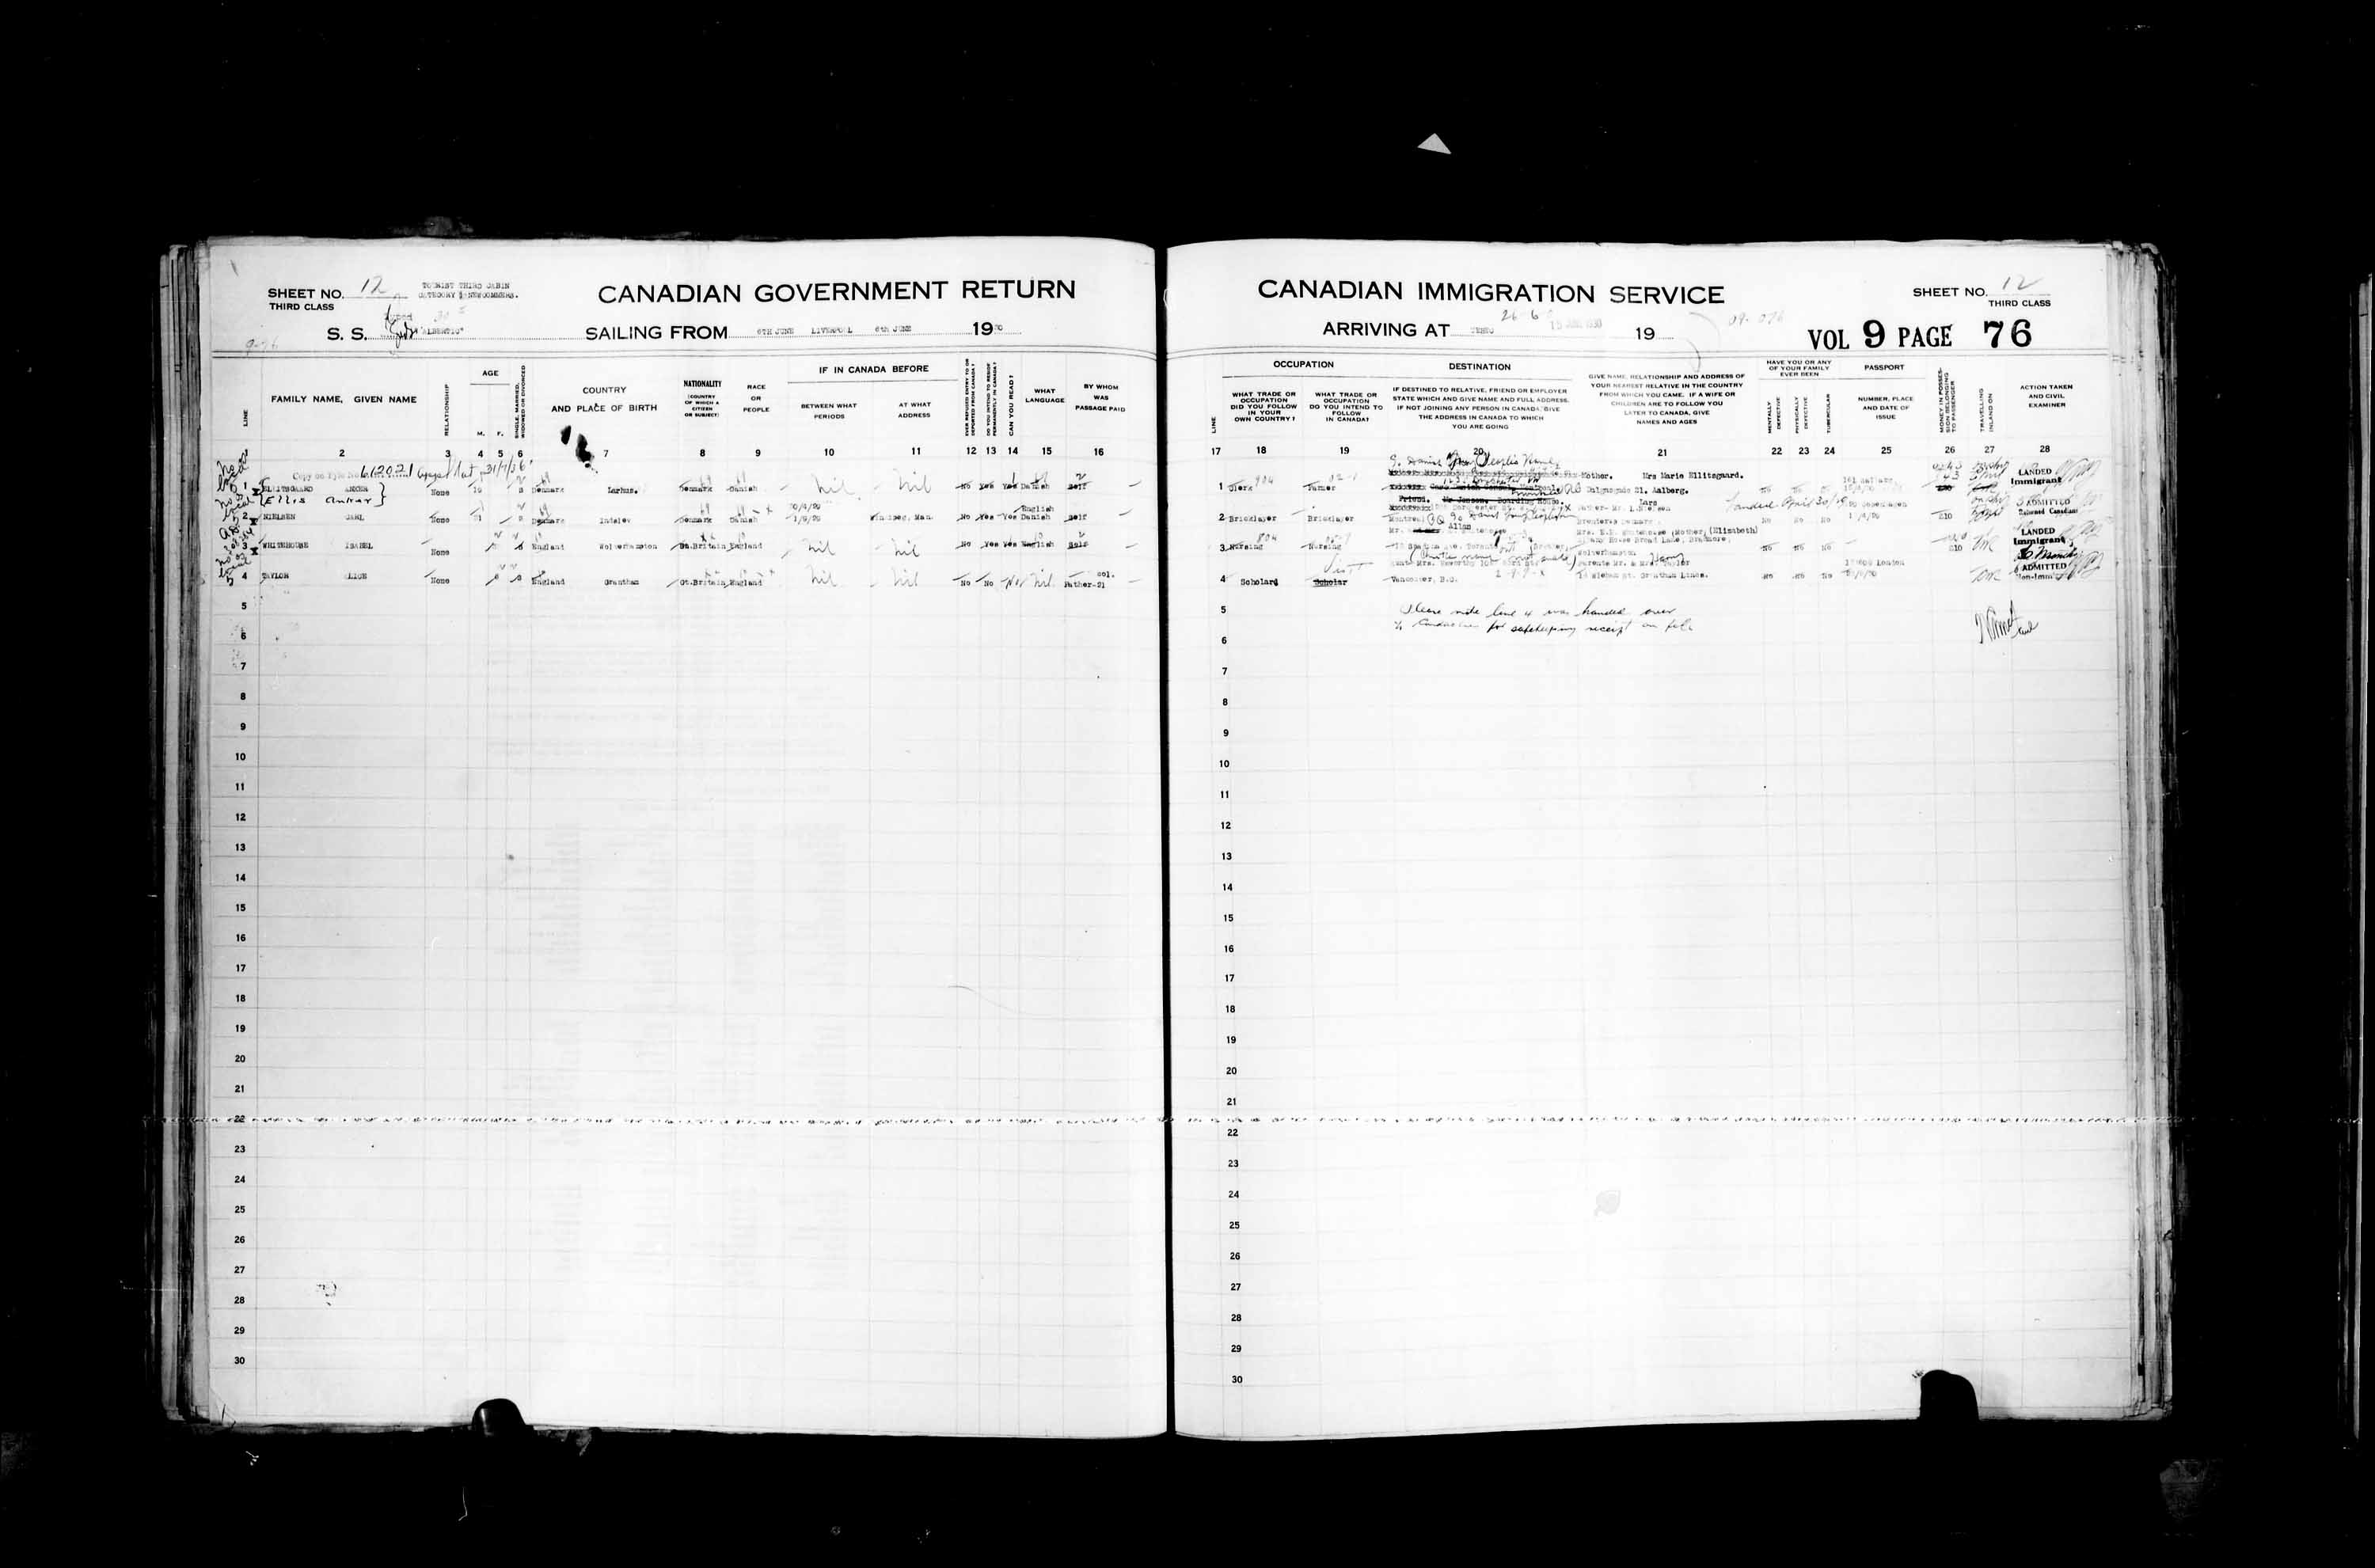 Title: Passenger Lists: Quebec City (1925-1935) - Mikan Number: 134839 - Microform: t-14765